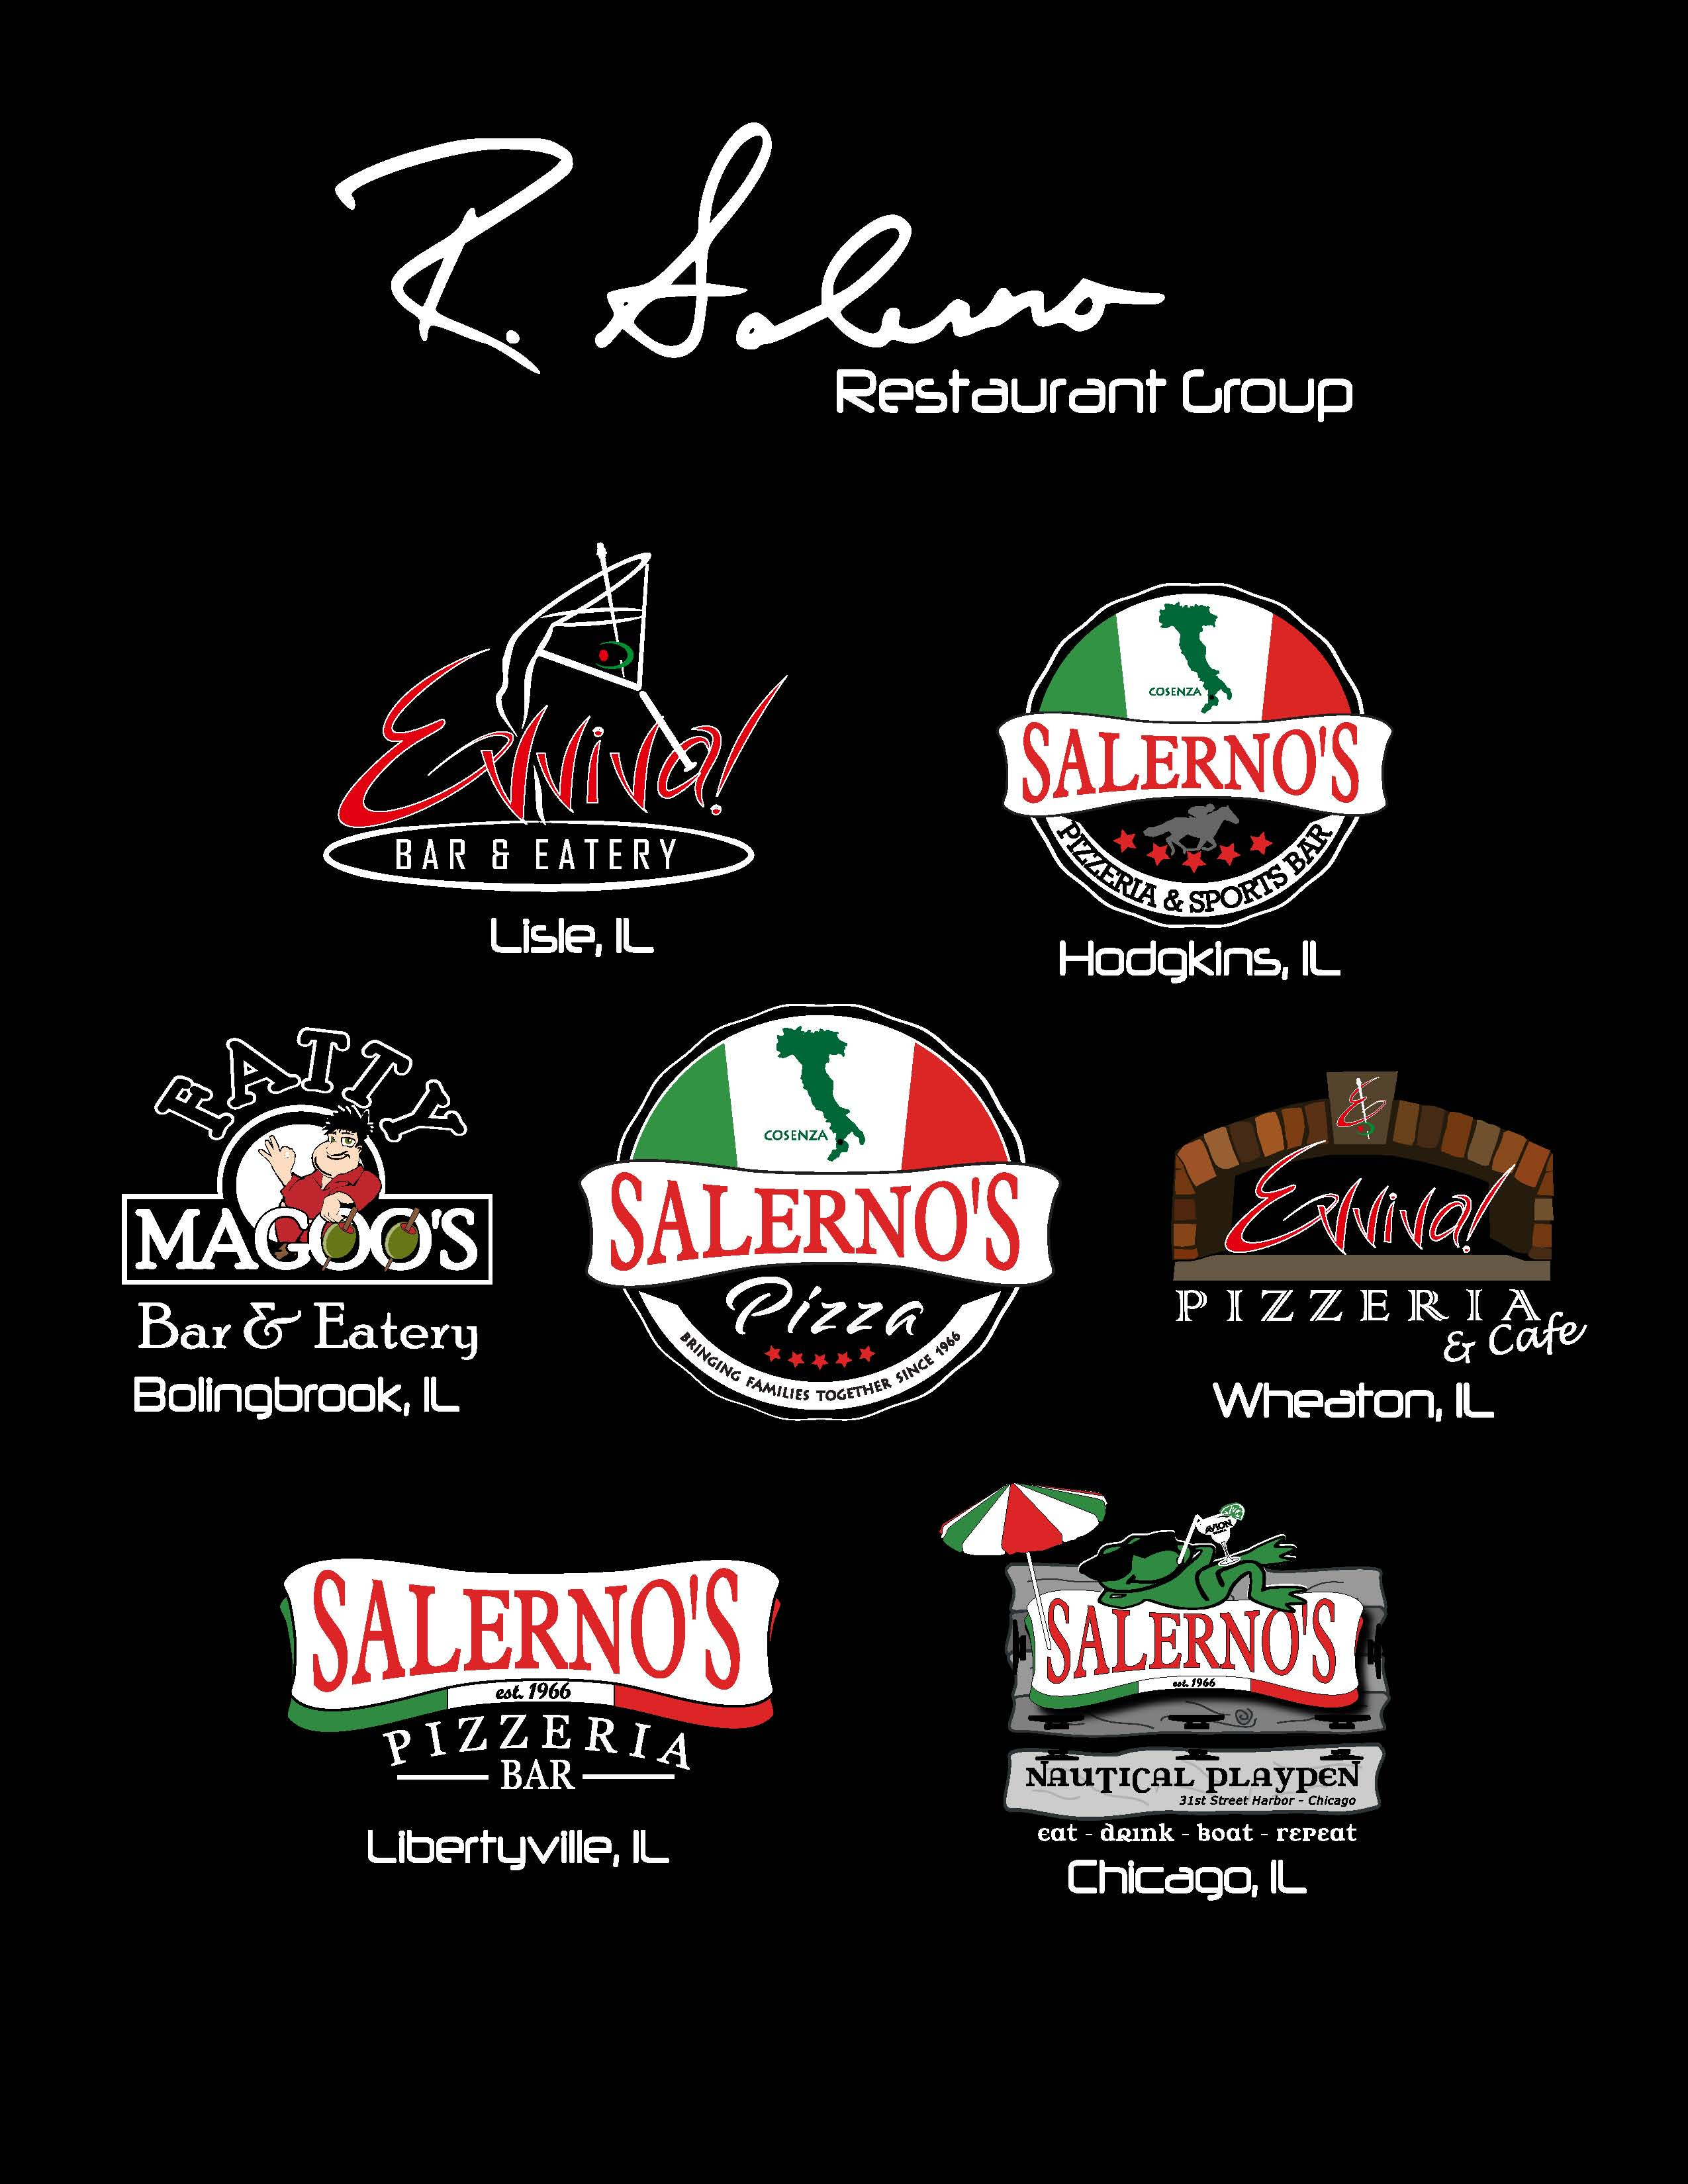 Salerno's Pizza